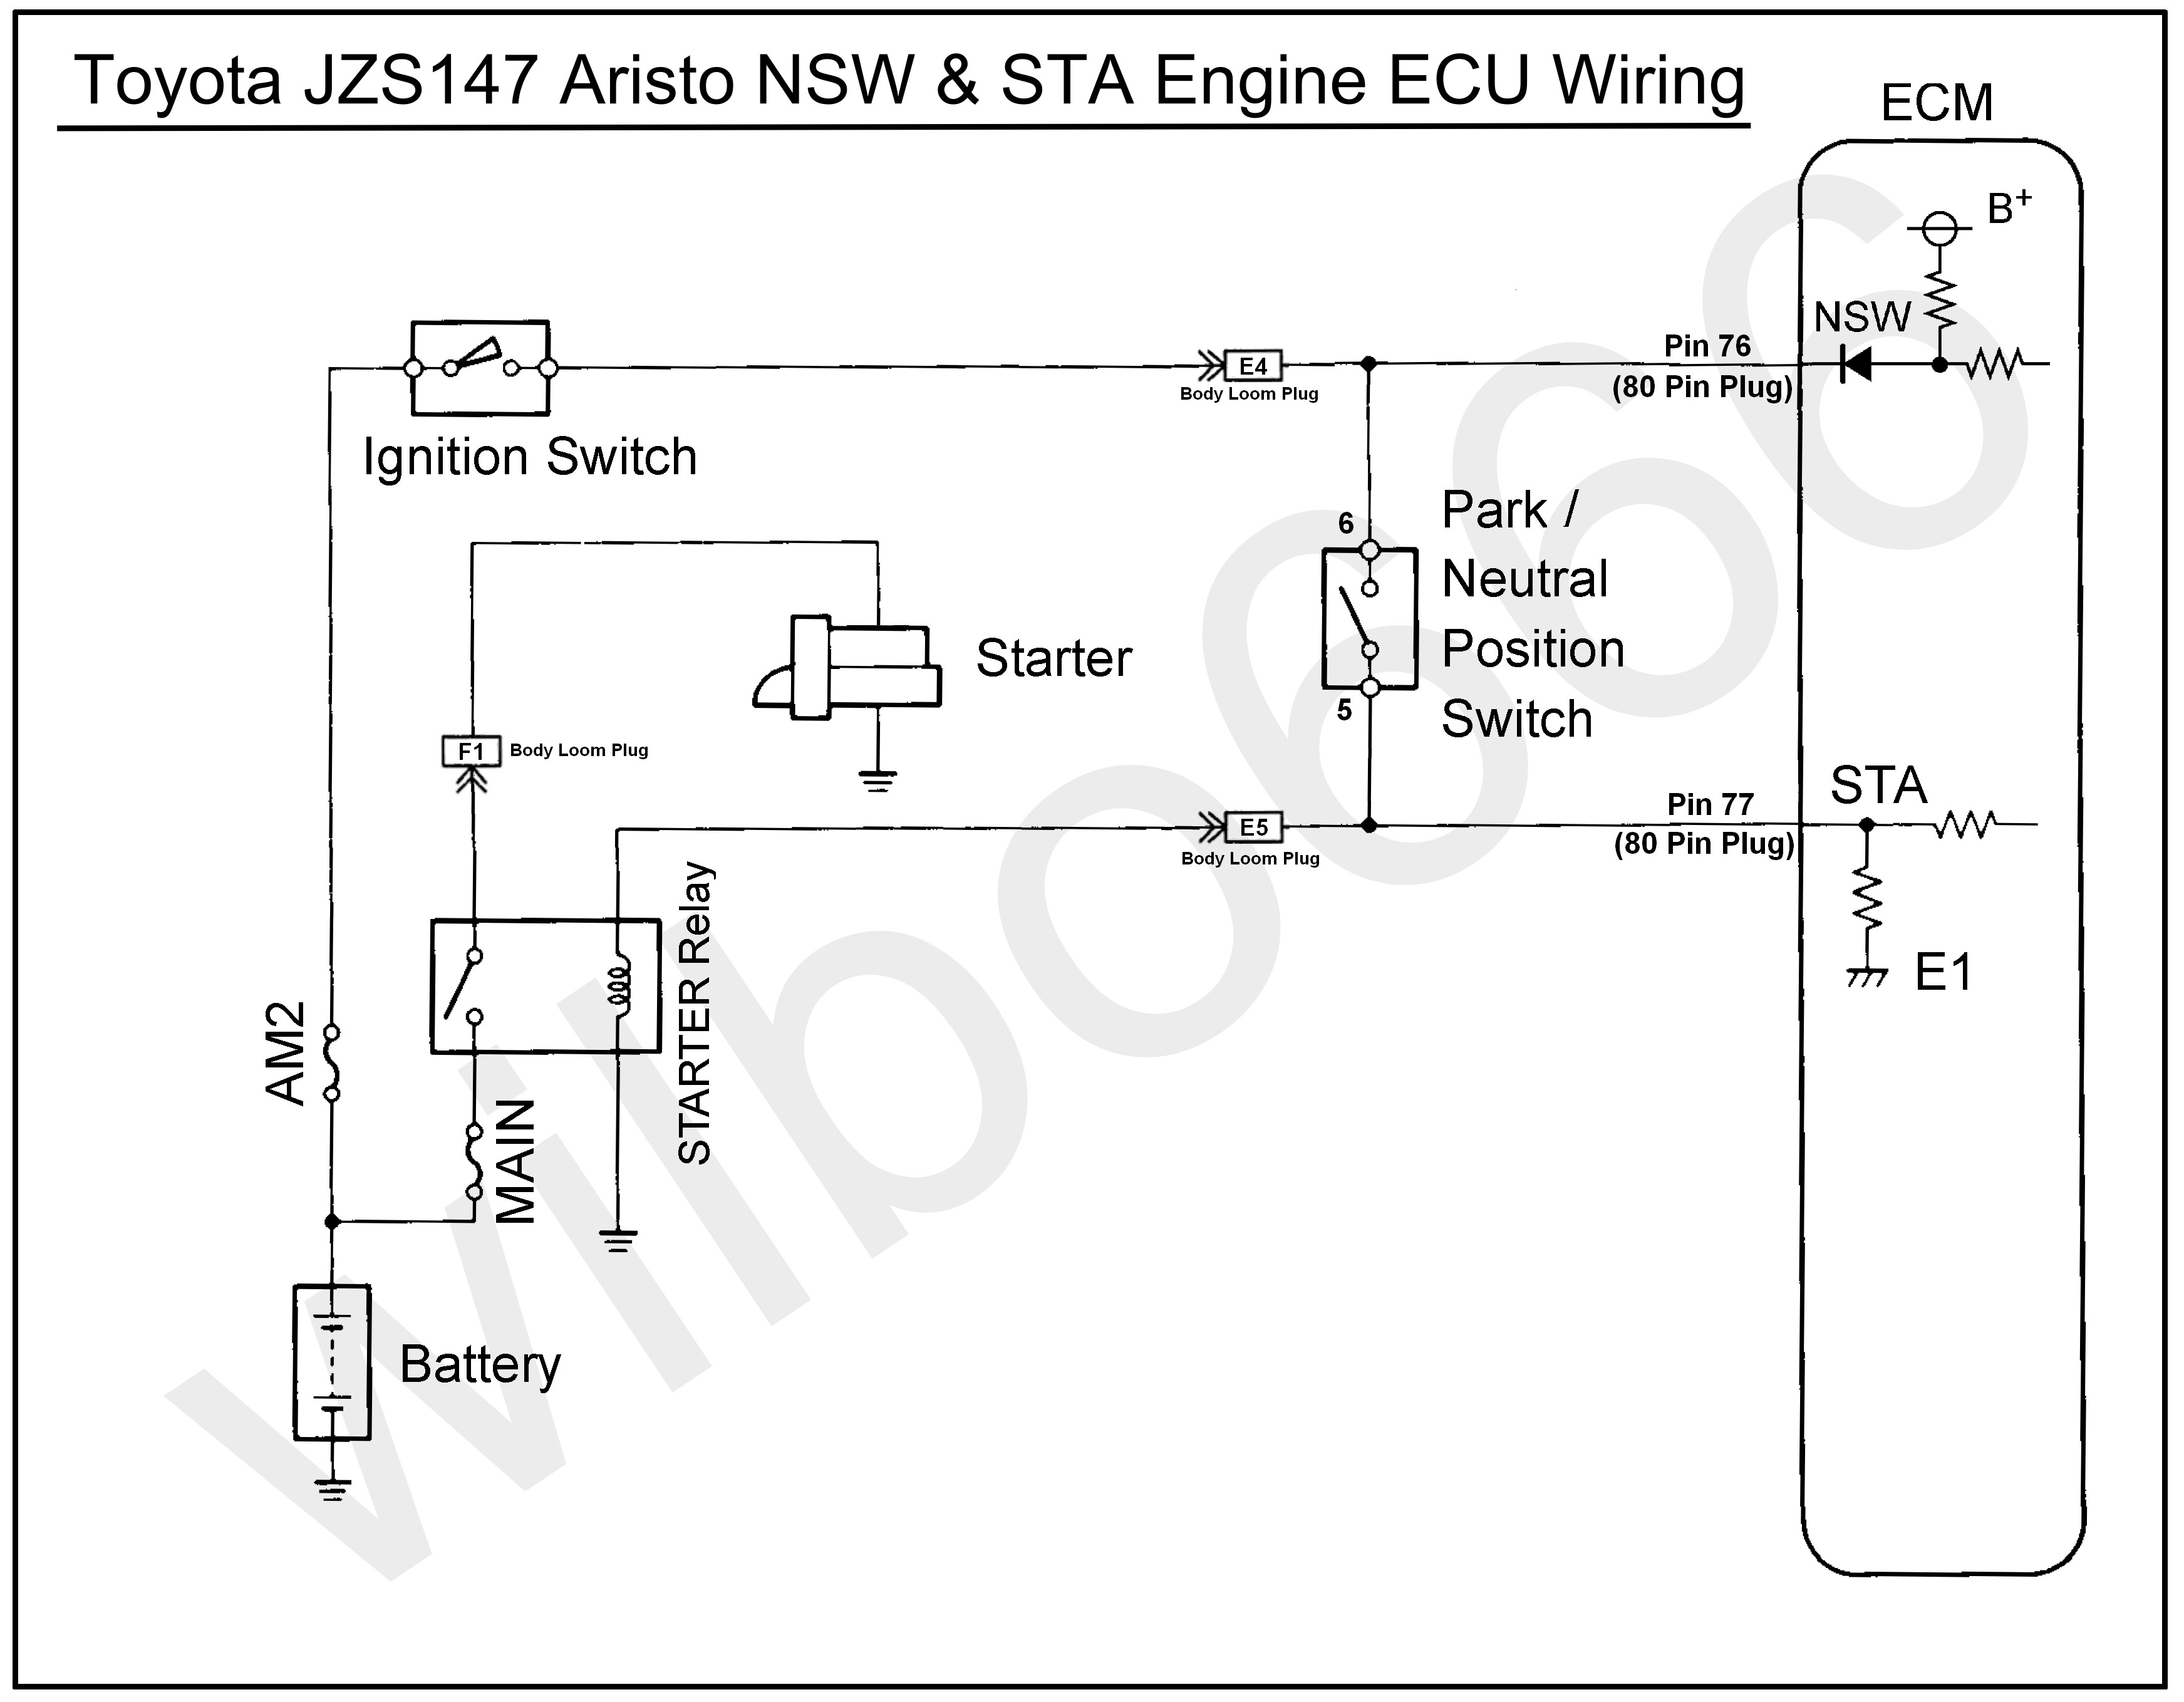 Toyota Igniter Wiring Diagram Diagrams Ae86 Ignition Coil Free Download Pictures Image Switch Jzs147 Aristo 2jz